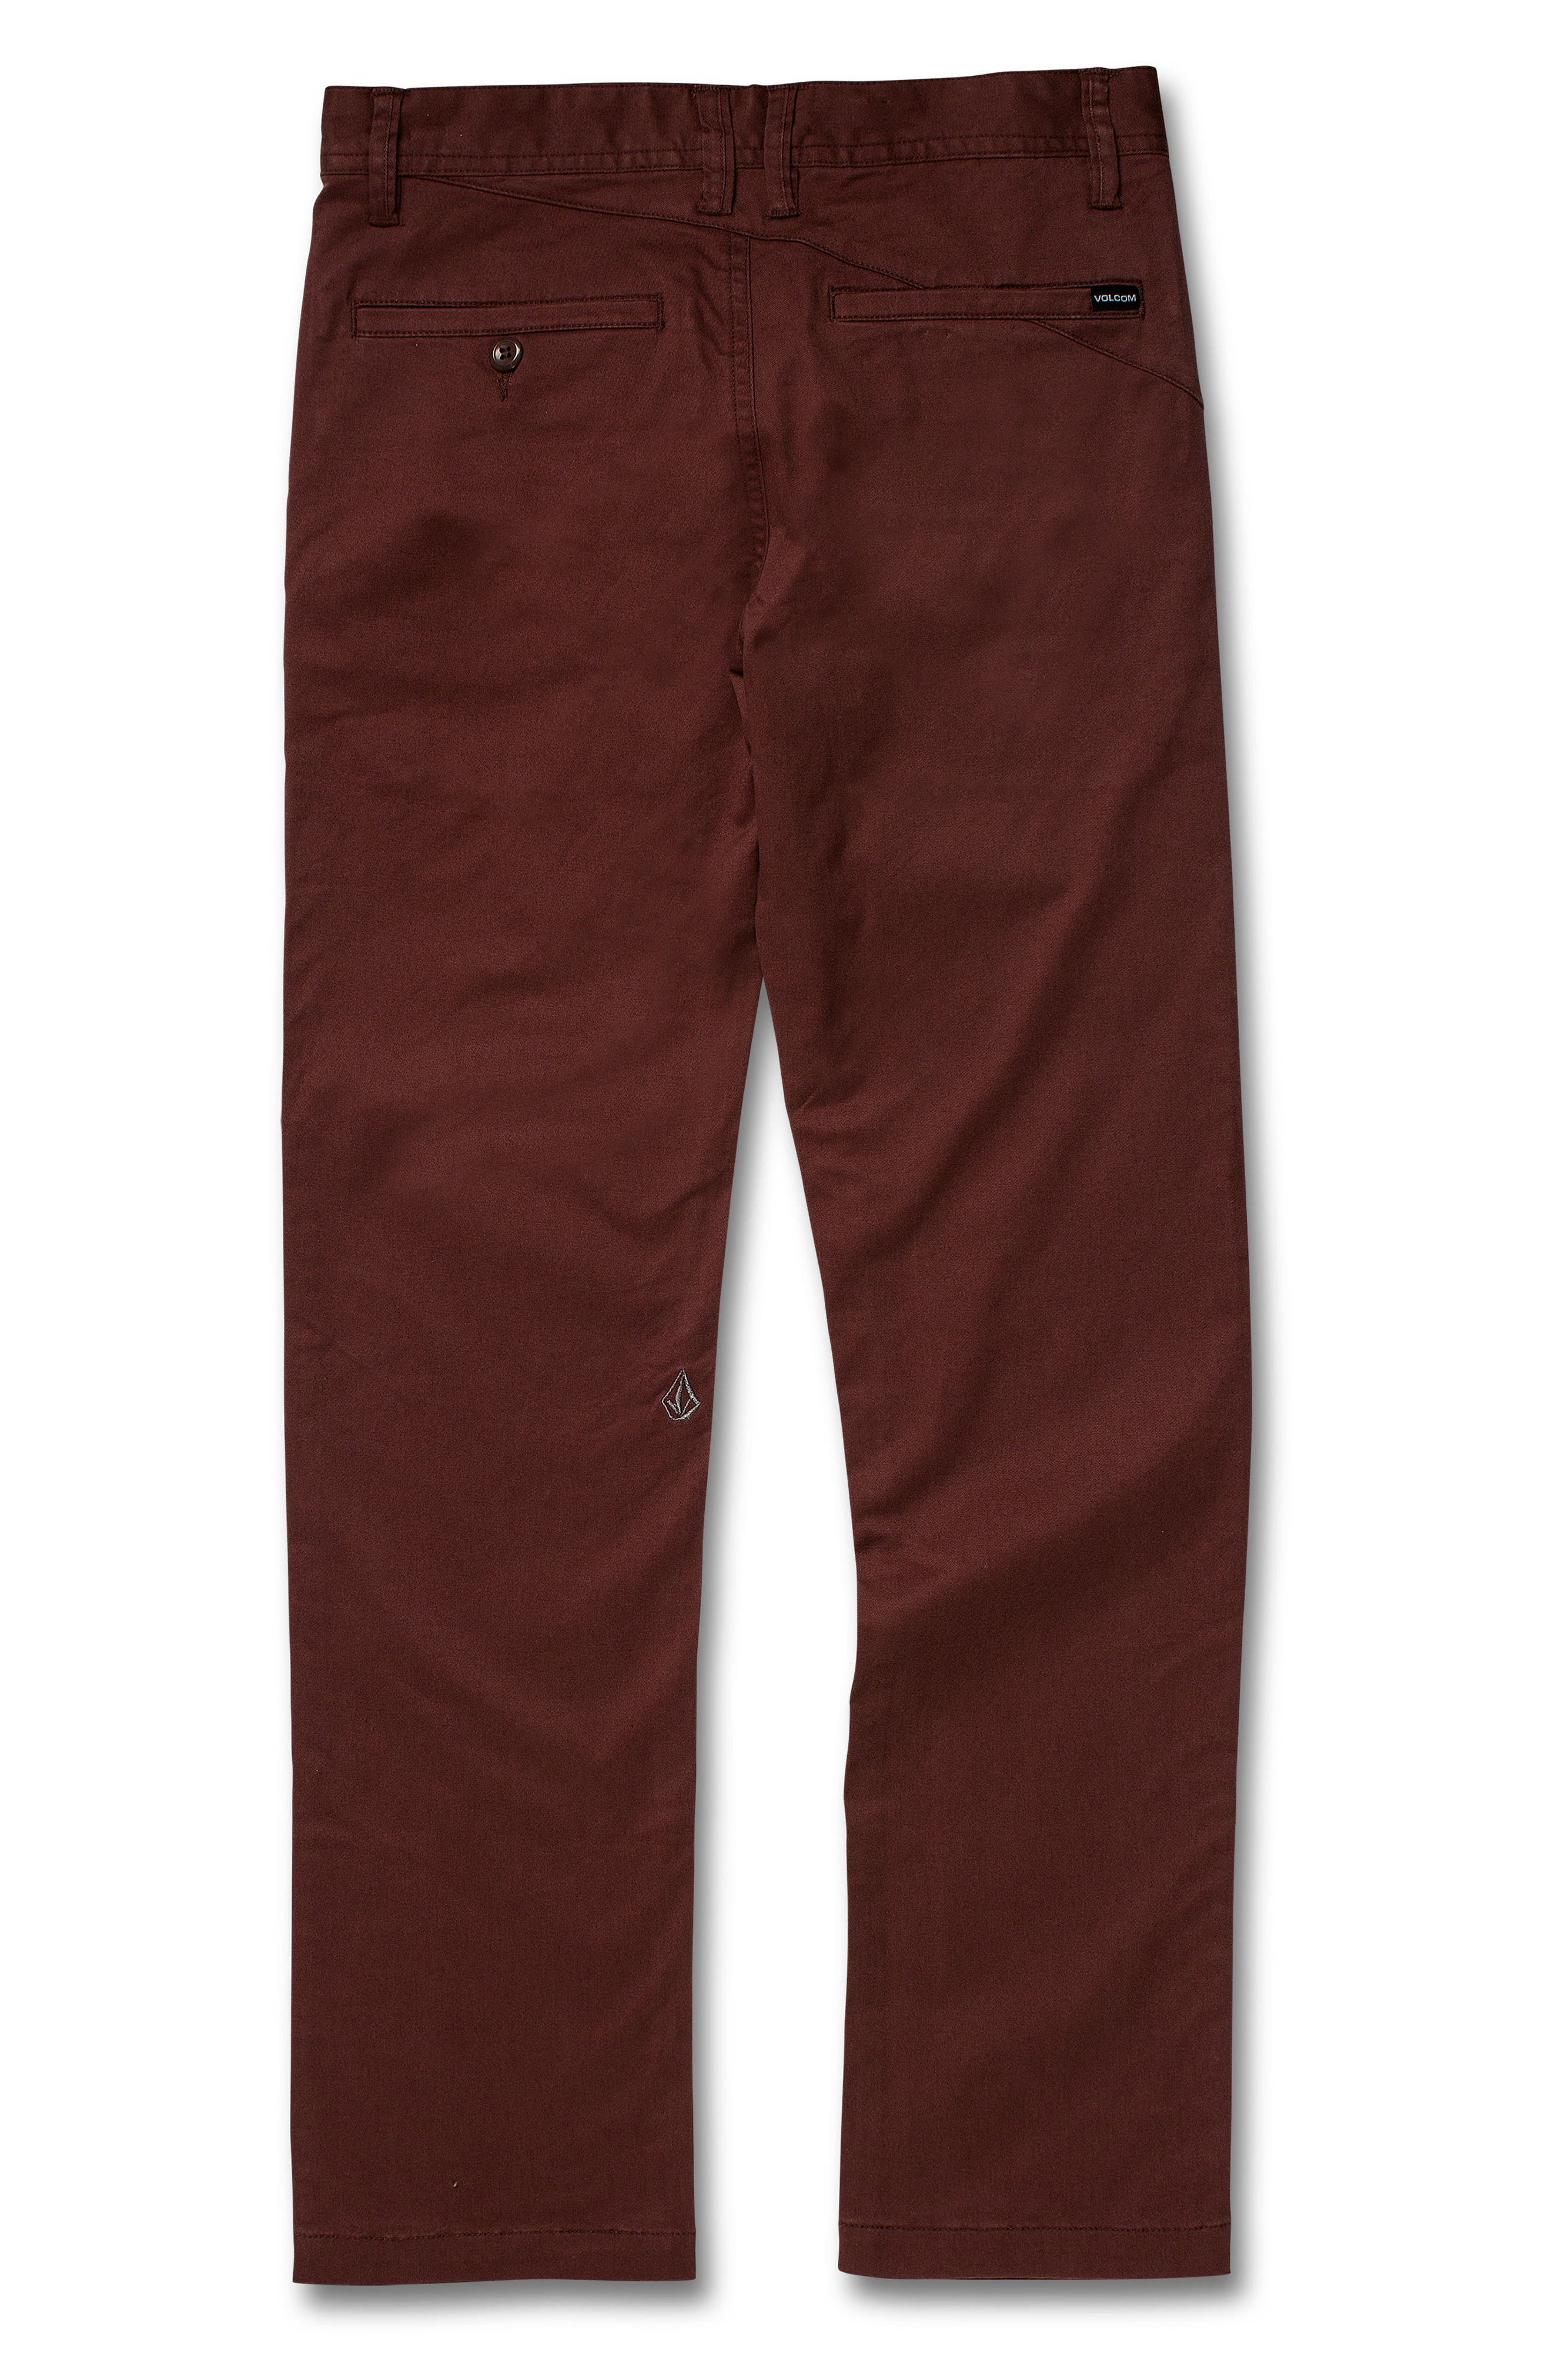 VOLCOM, Slim Fit Stretch Chinos, Alternate thumbnail 2, color, BROWN